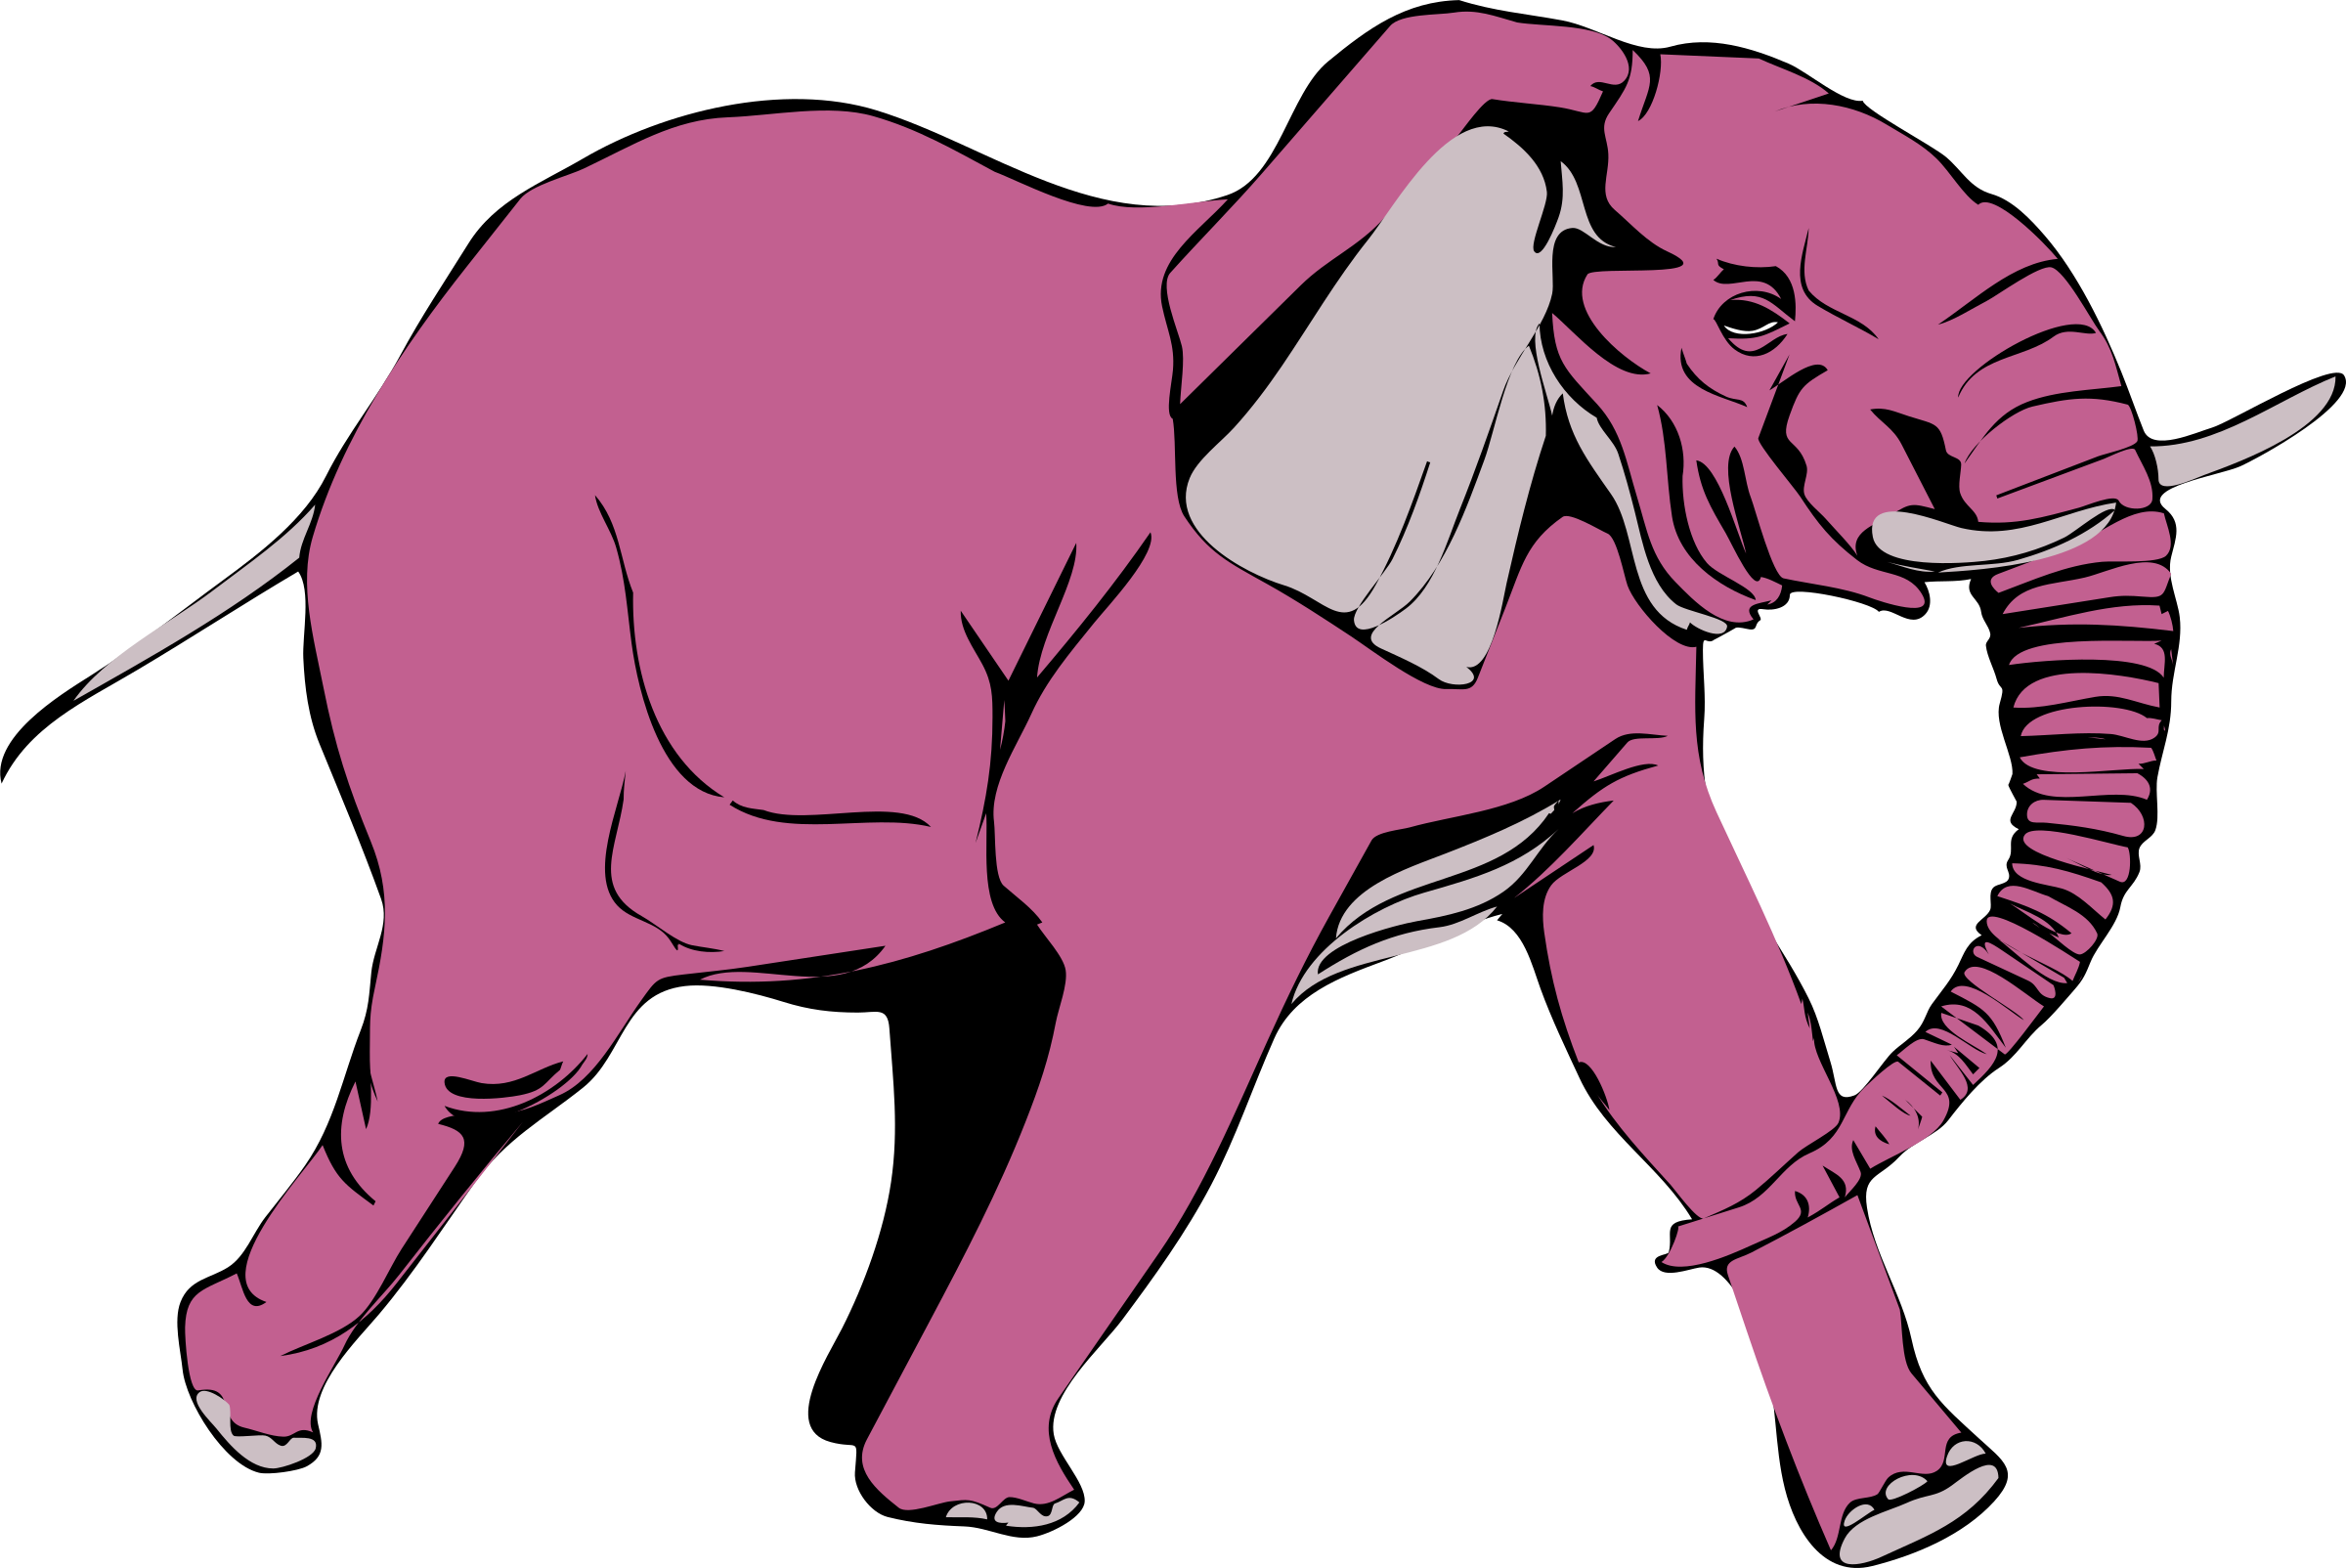 Pink elephant on the rampage by anarres